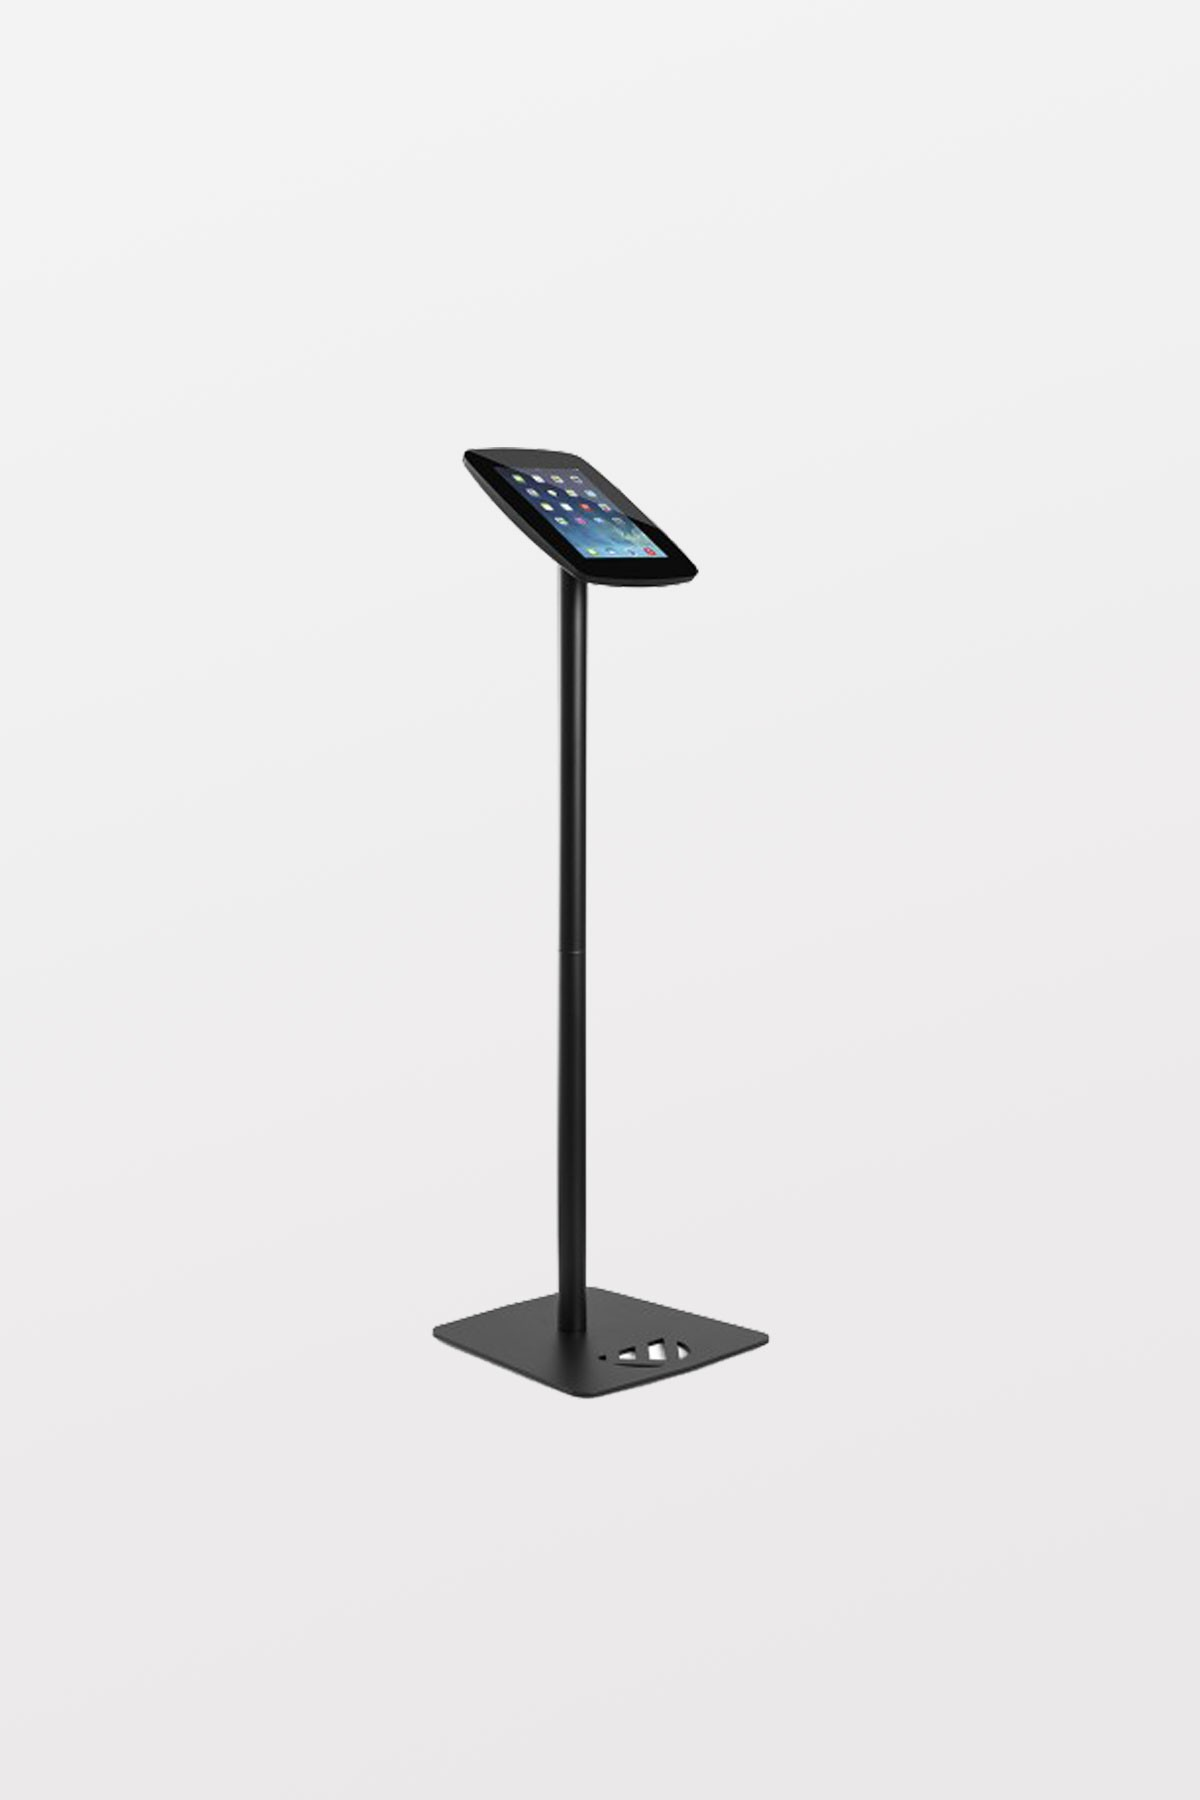 Tryten iPad Kiosk Floor Stand - Black, Closed Faceplate - Comes with Lock and 2 user keys. Includes adapter kit for iPad Air.